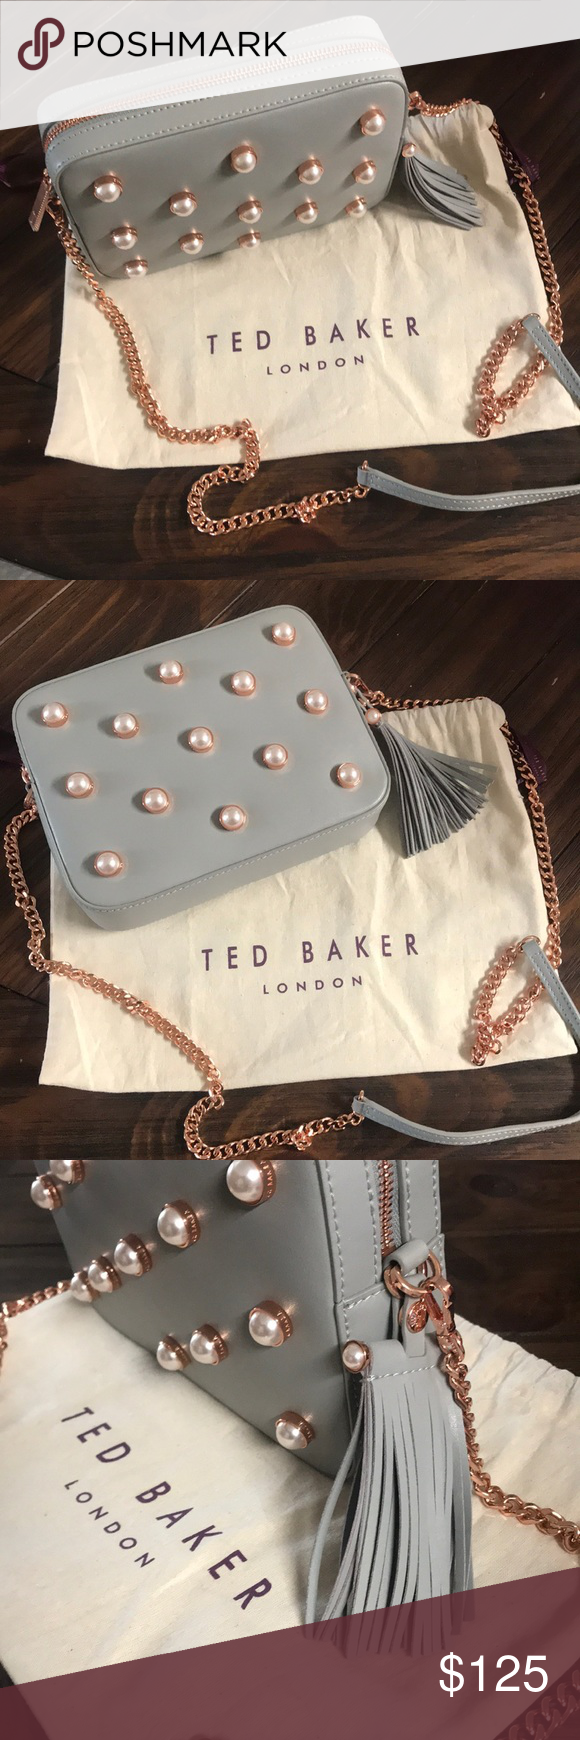 Ted Baker Handbag Beautiful Gray And Pearl Ted Baker Handbag Rose Gold Accents Ted Baker London Bags Crossb Ted Baker Handbag Ted Baker London Bags Ted Baker [ 1740 x 580 Pixel ]